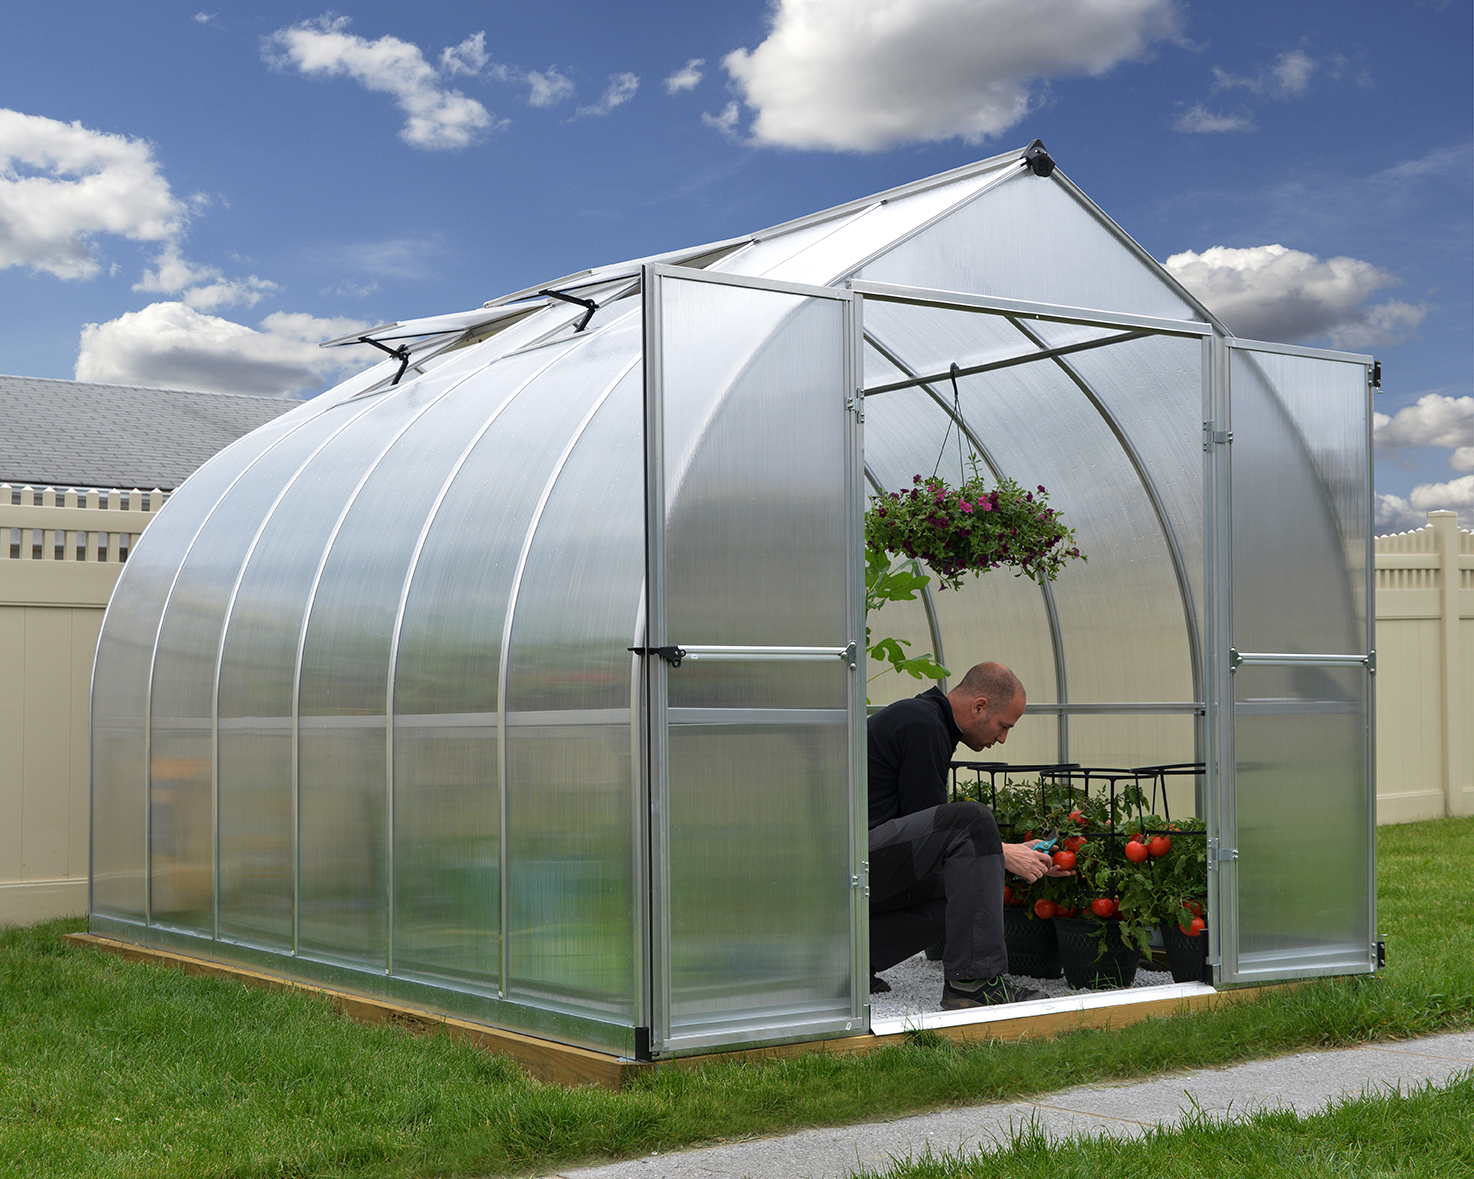 A Hobby Greenhouse Covered With Sunlite Multiwall Polycarbonate Sheet Greenhouse Best Greenhouse Hobby Greenhouse